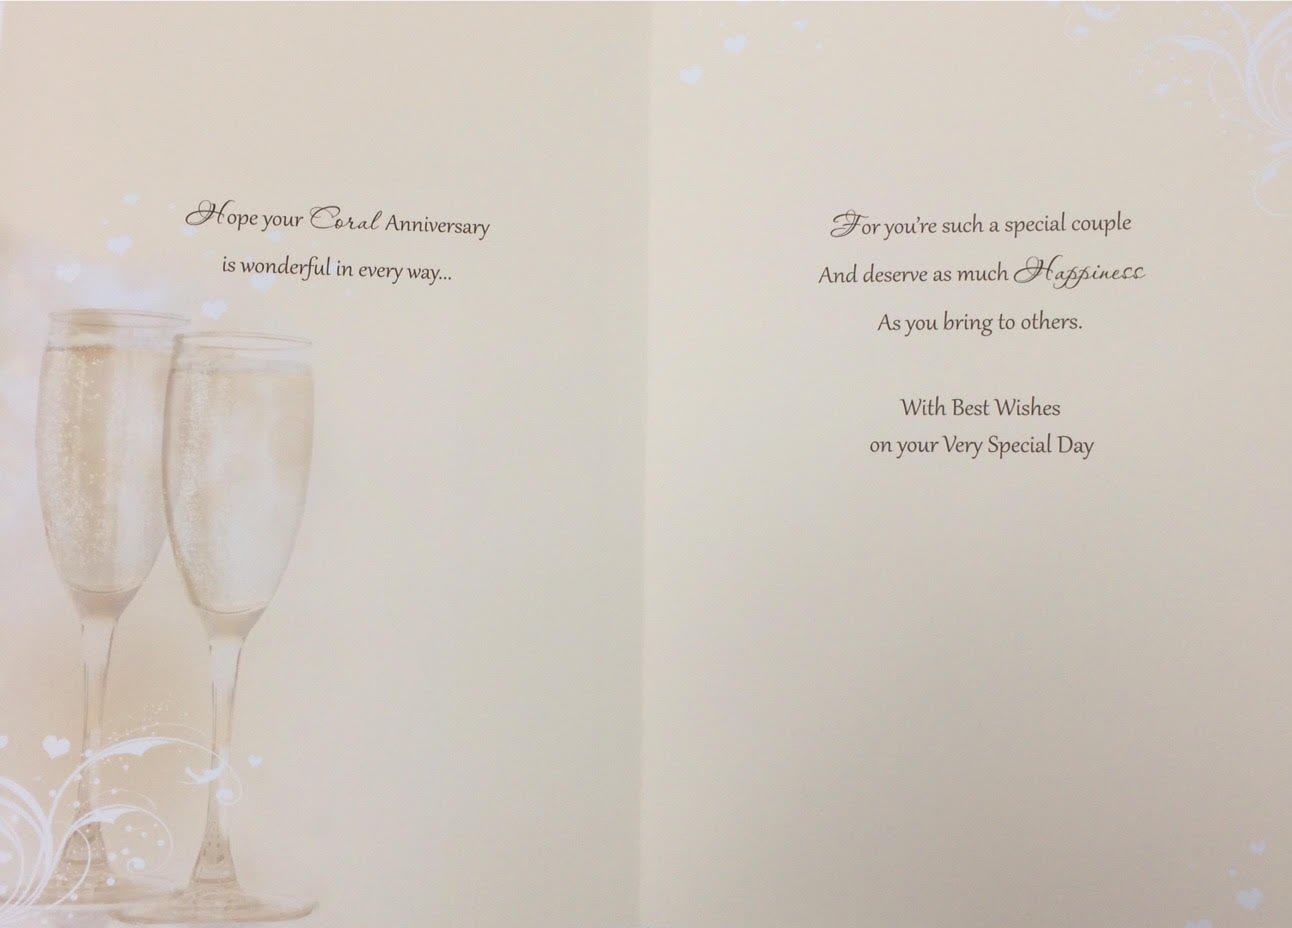 On Your Coral 35th Anniversary Card ~ With Best Wishes on your Very Special Day